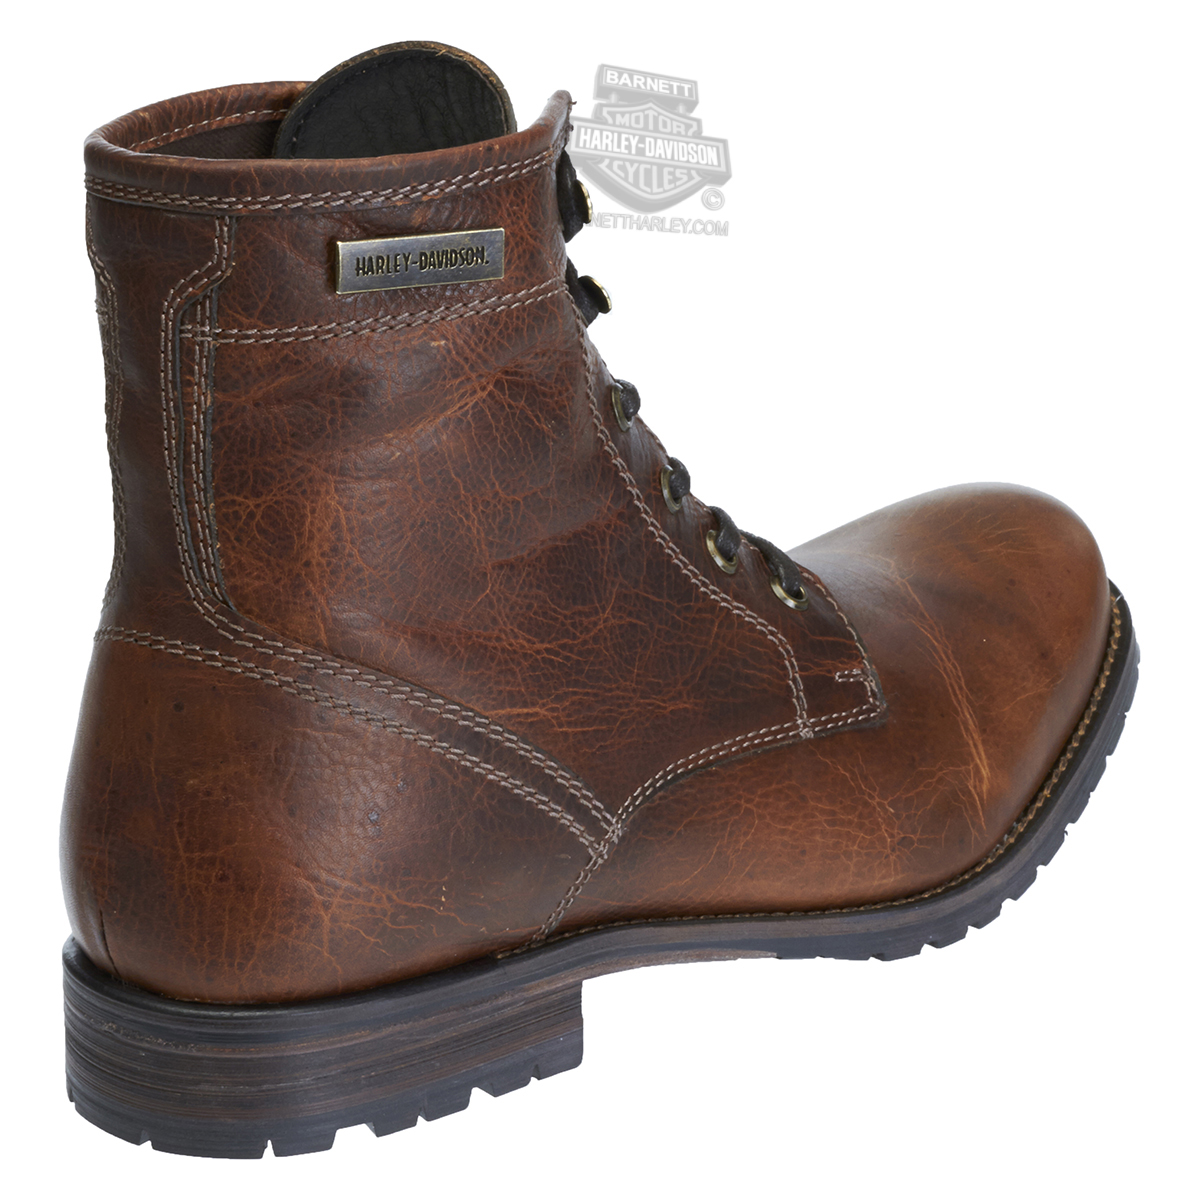 93318 harley davidson 174 mens jutland brown leather low